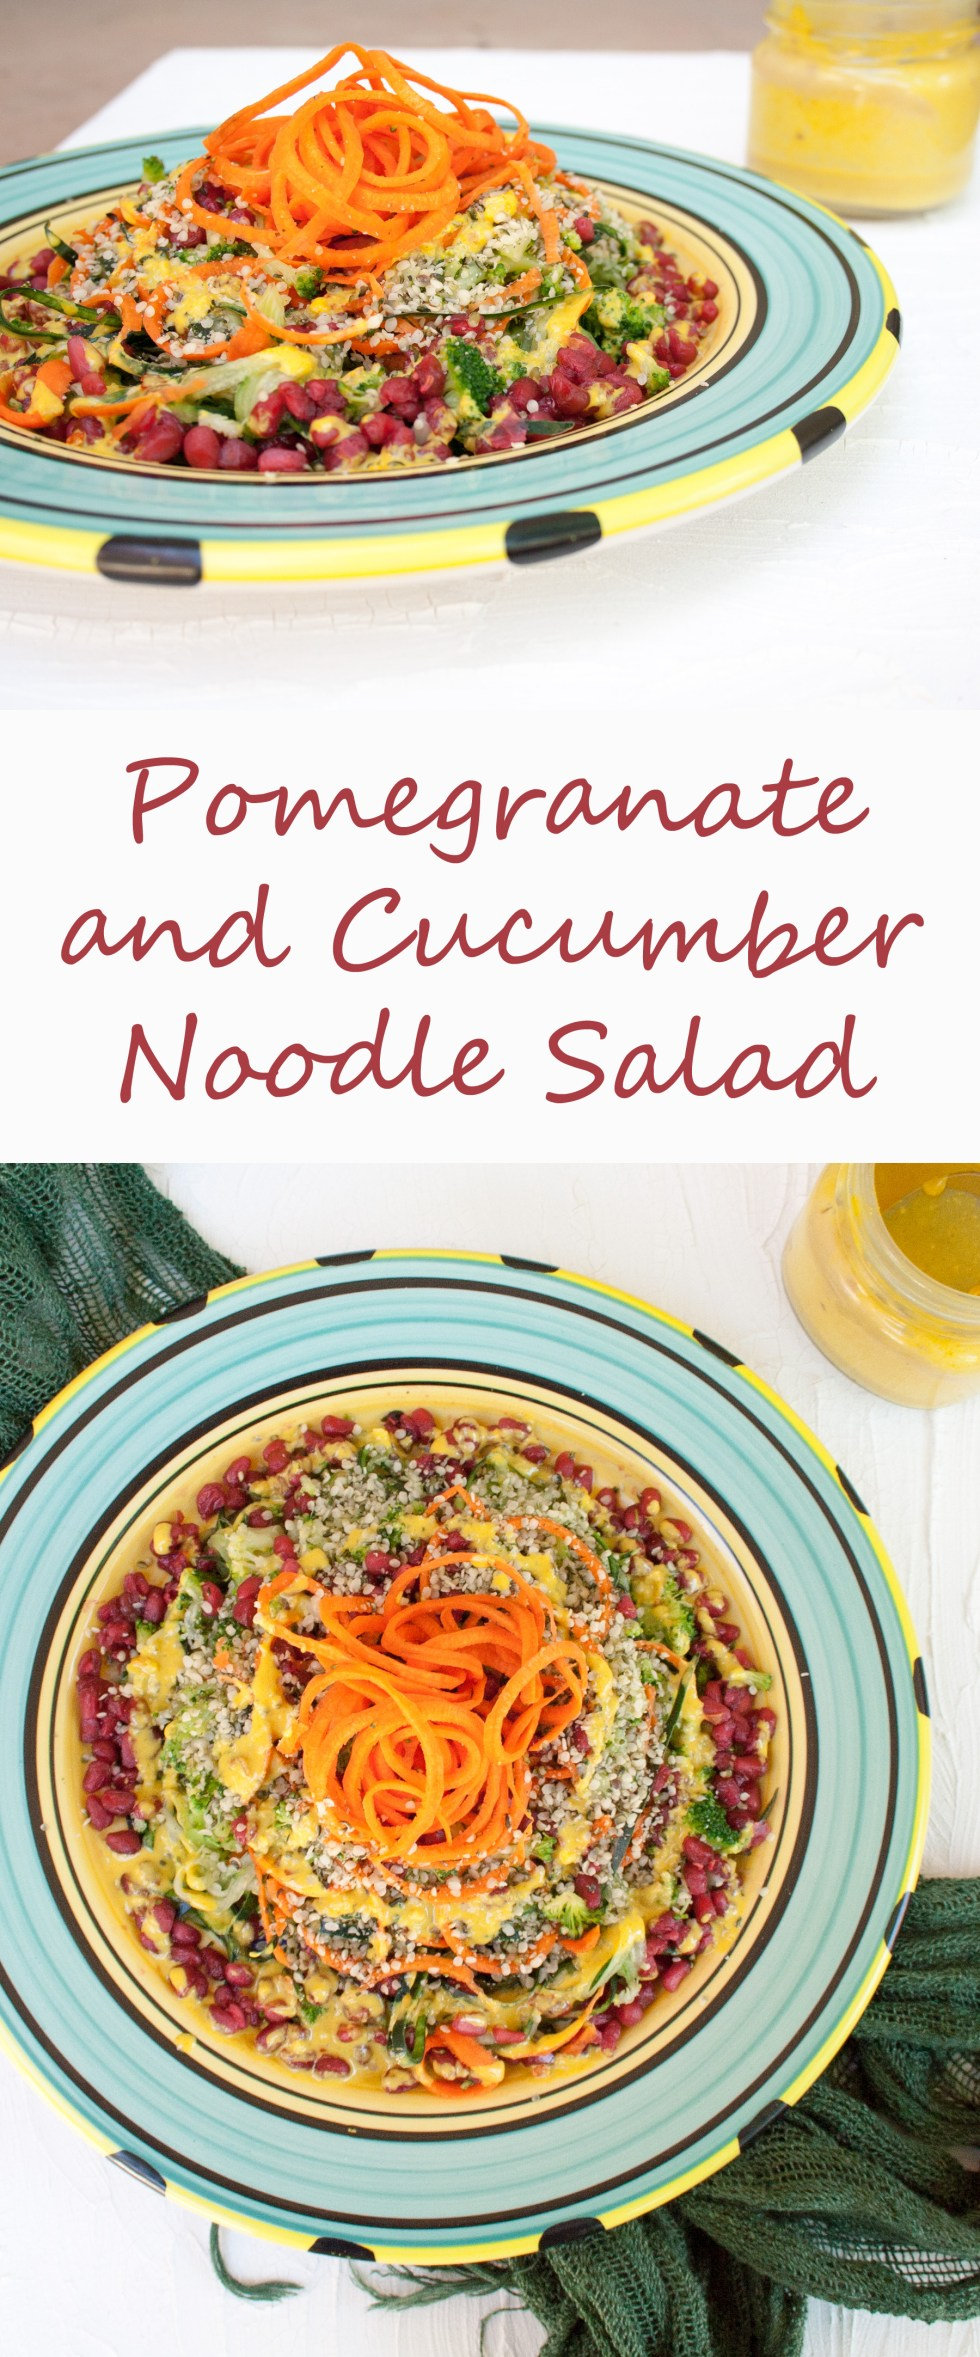 Pomegranate and Cucumber Noodle Salad (vegan, gluten free) - This sweet, savory salad is not only visually appealing, but has many health benefits as well.